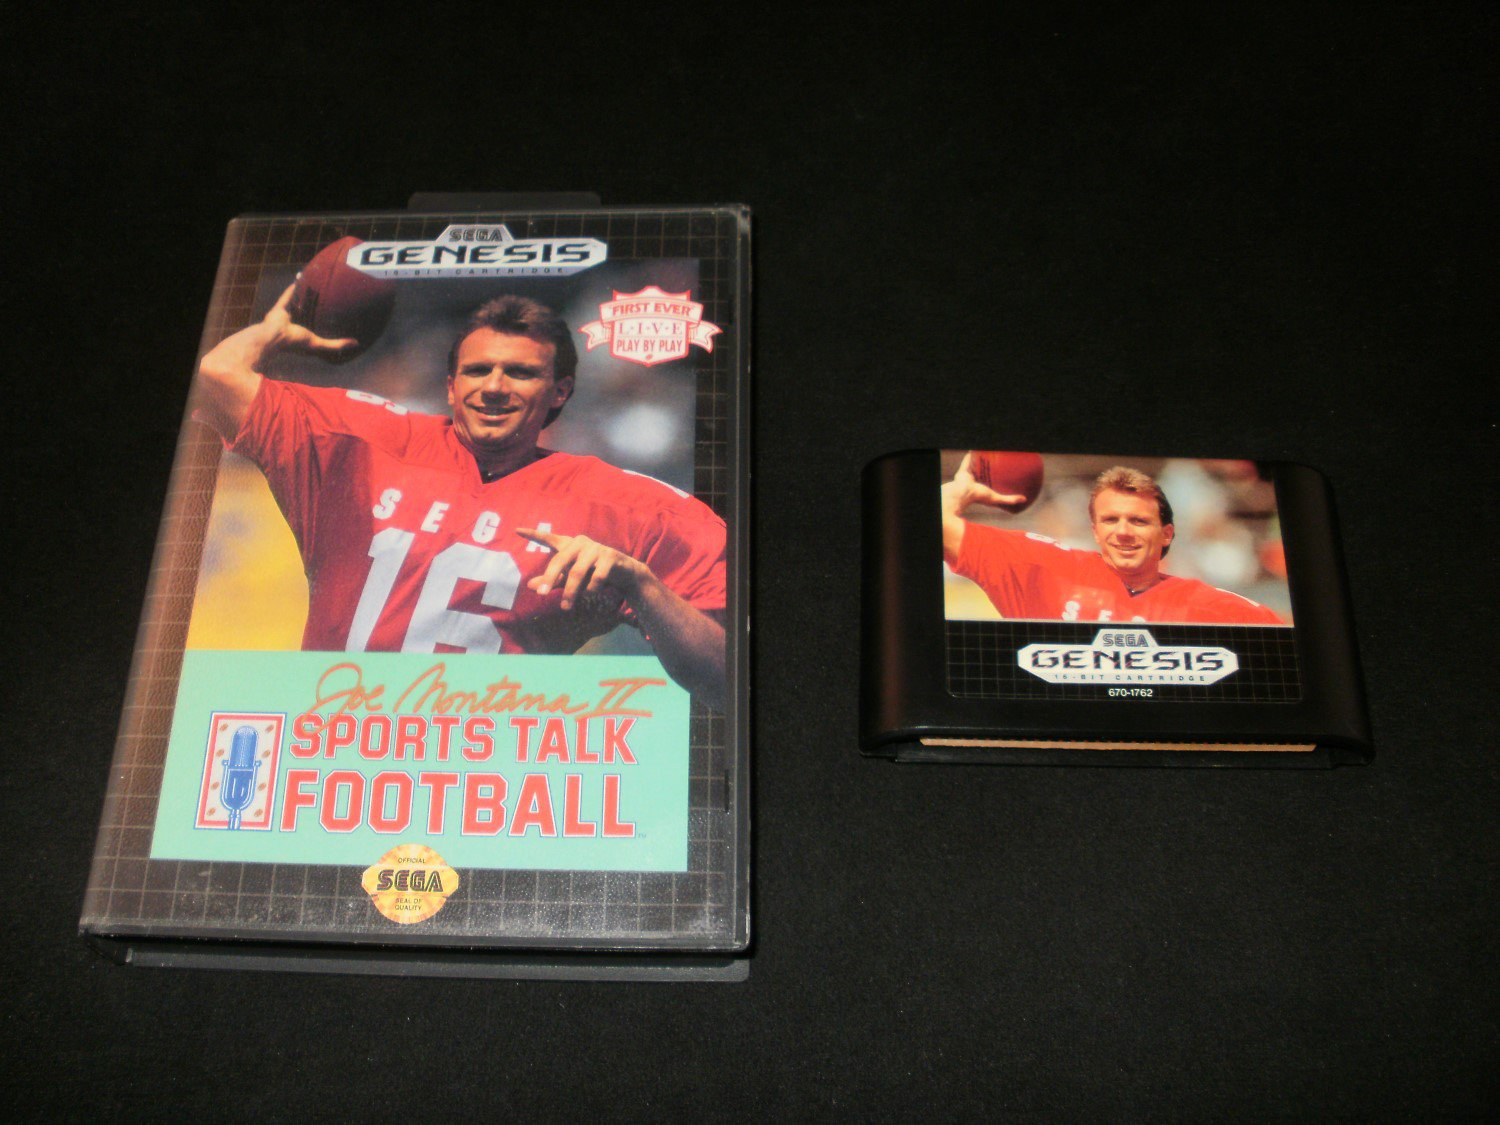 Joe Montana II Sports Talk Football - Sega Genesis - With Box